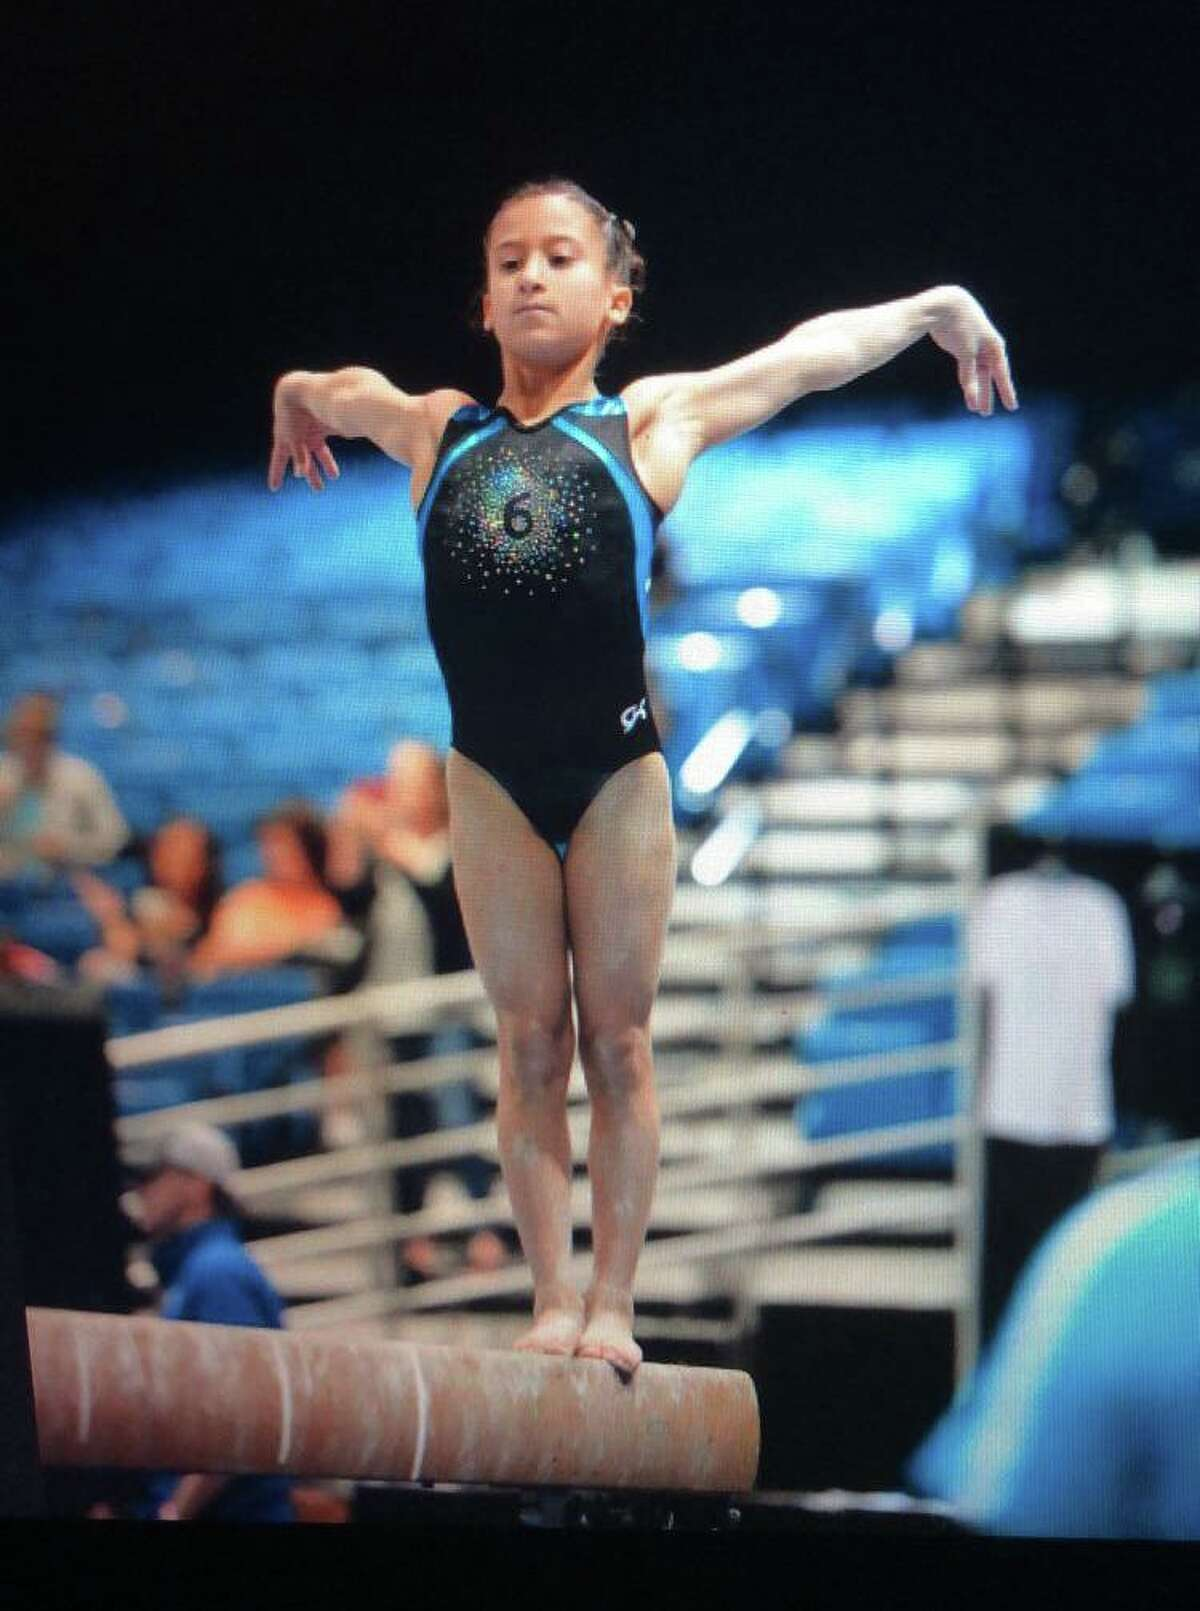 Silverstein has been working toward her dream of becoming an Olympic-level gymnast since she was a young.